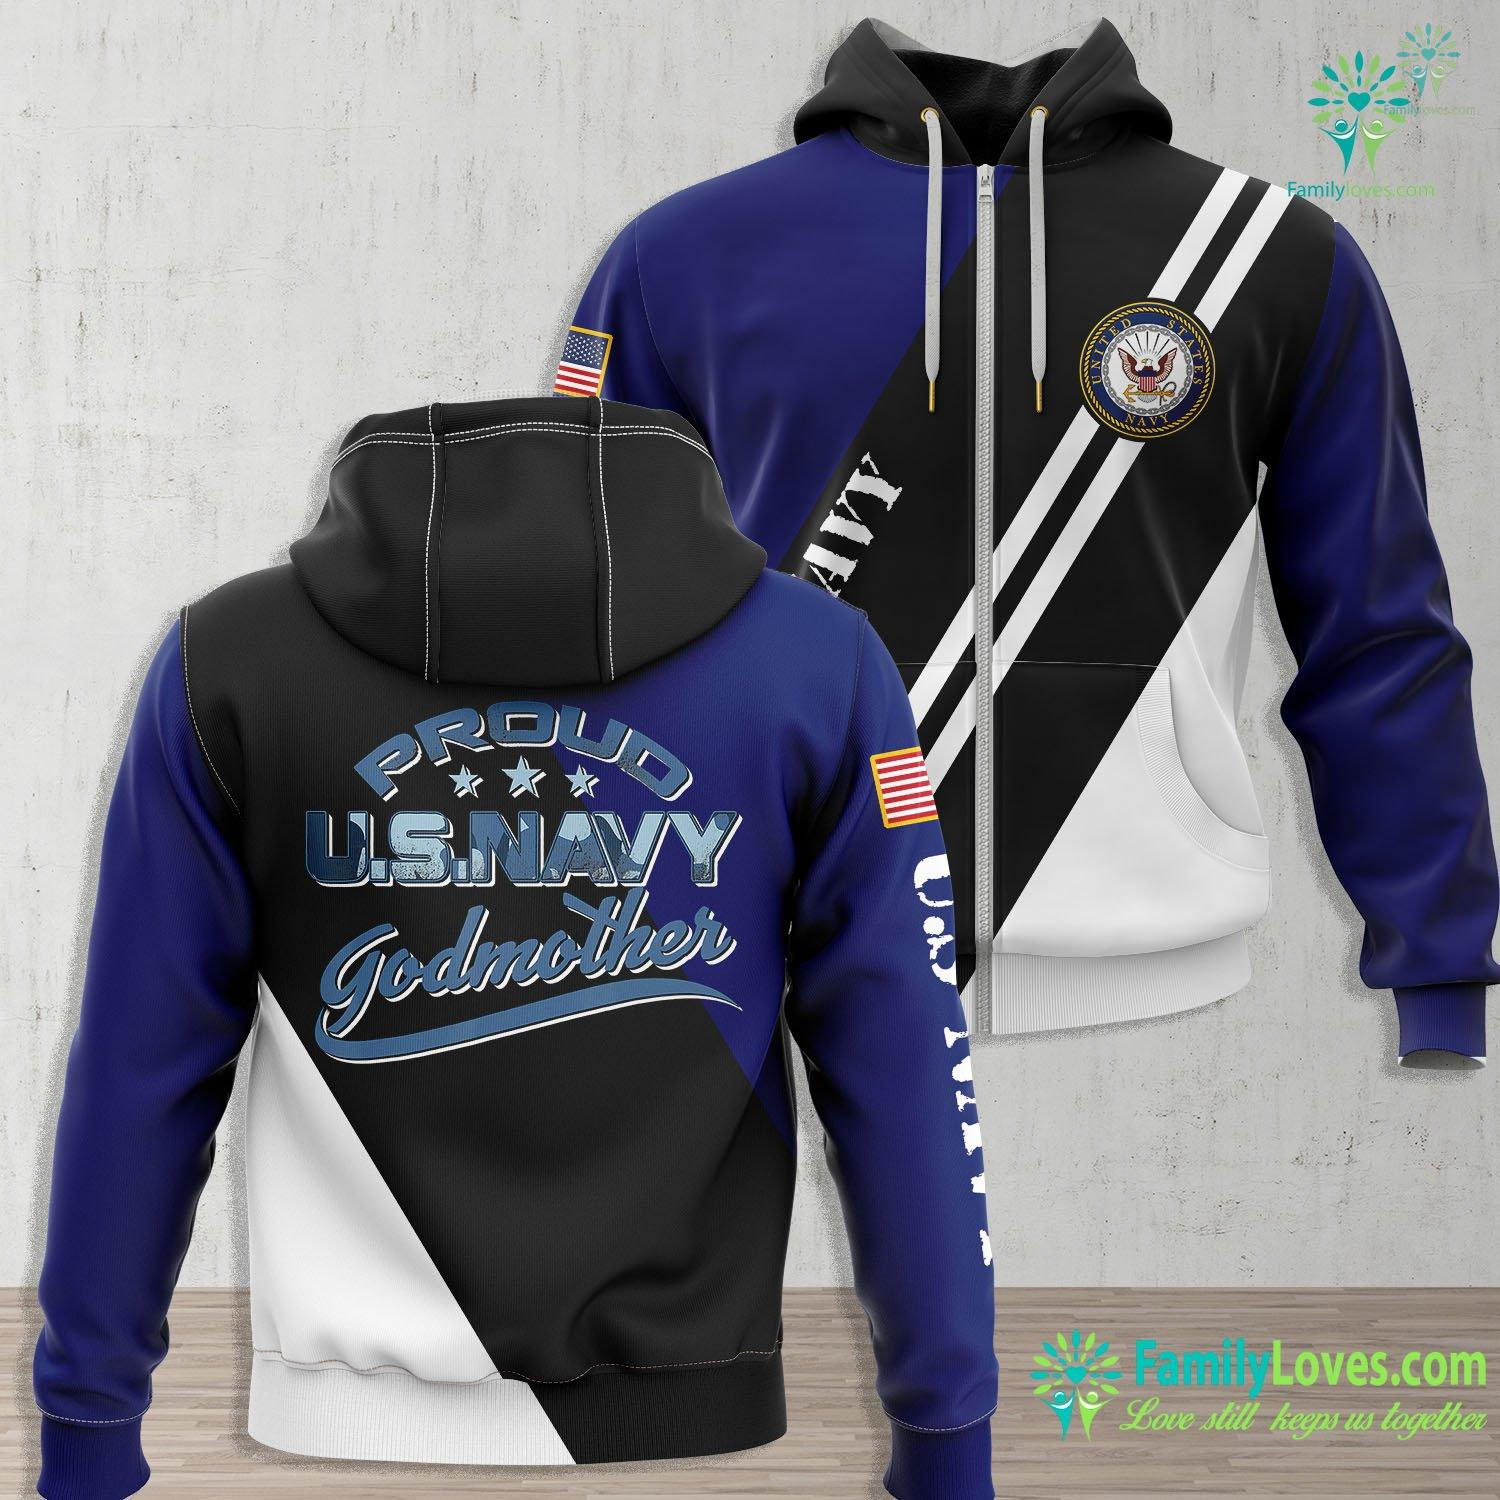 When Was The Us Navy Established Us Navy Matching Family Proud Navy Godmother For Her Navy Zip-up Hoodie All Over Print Familyloves.com